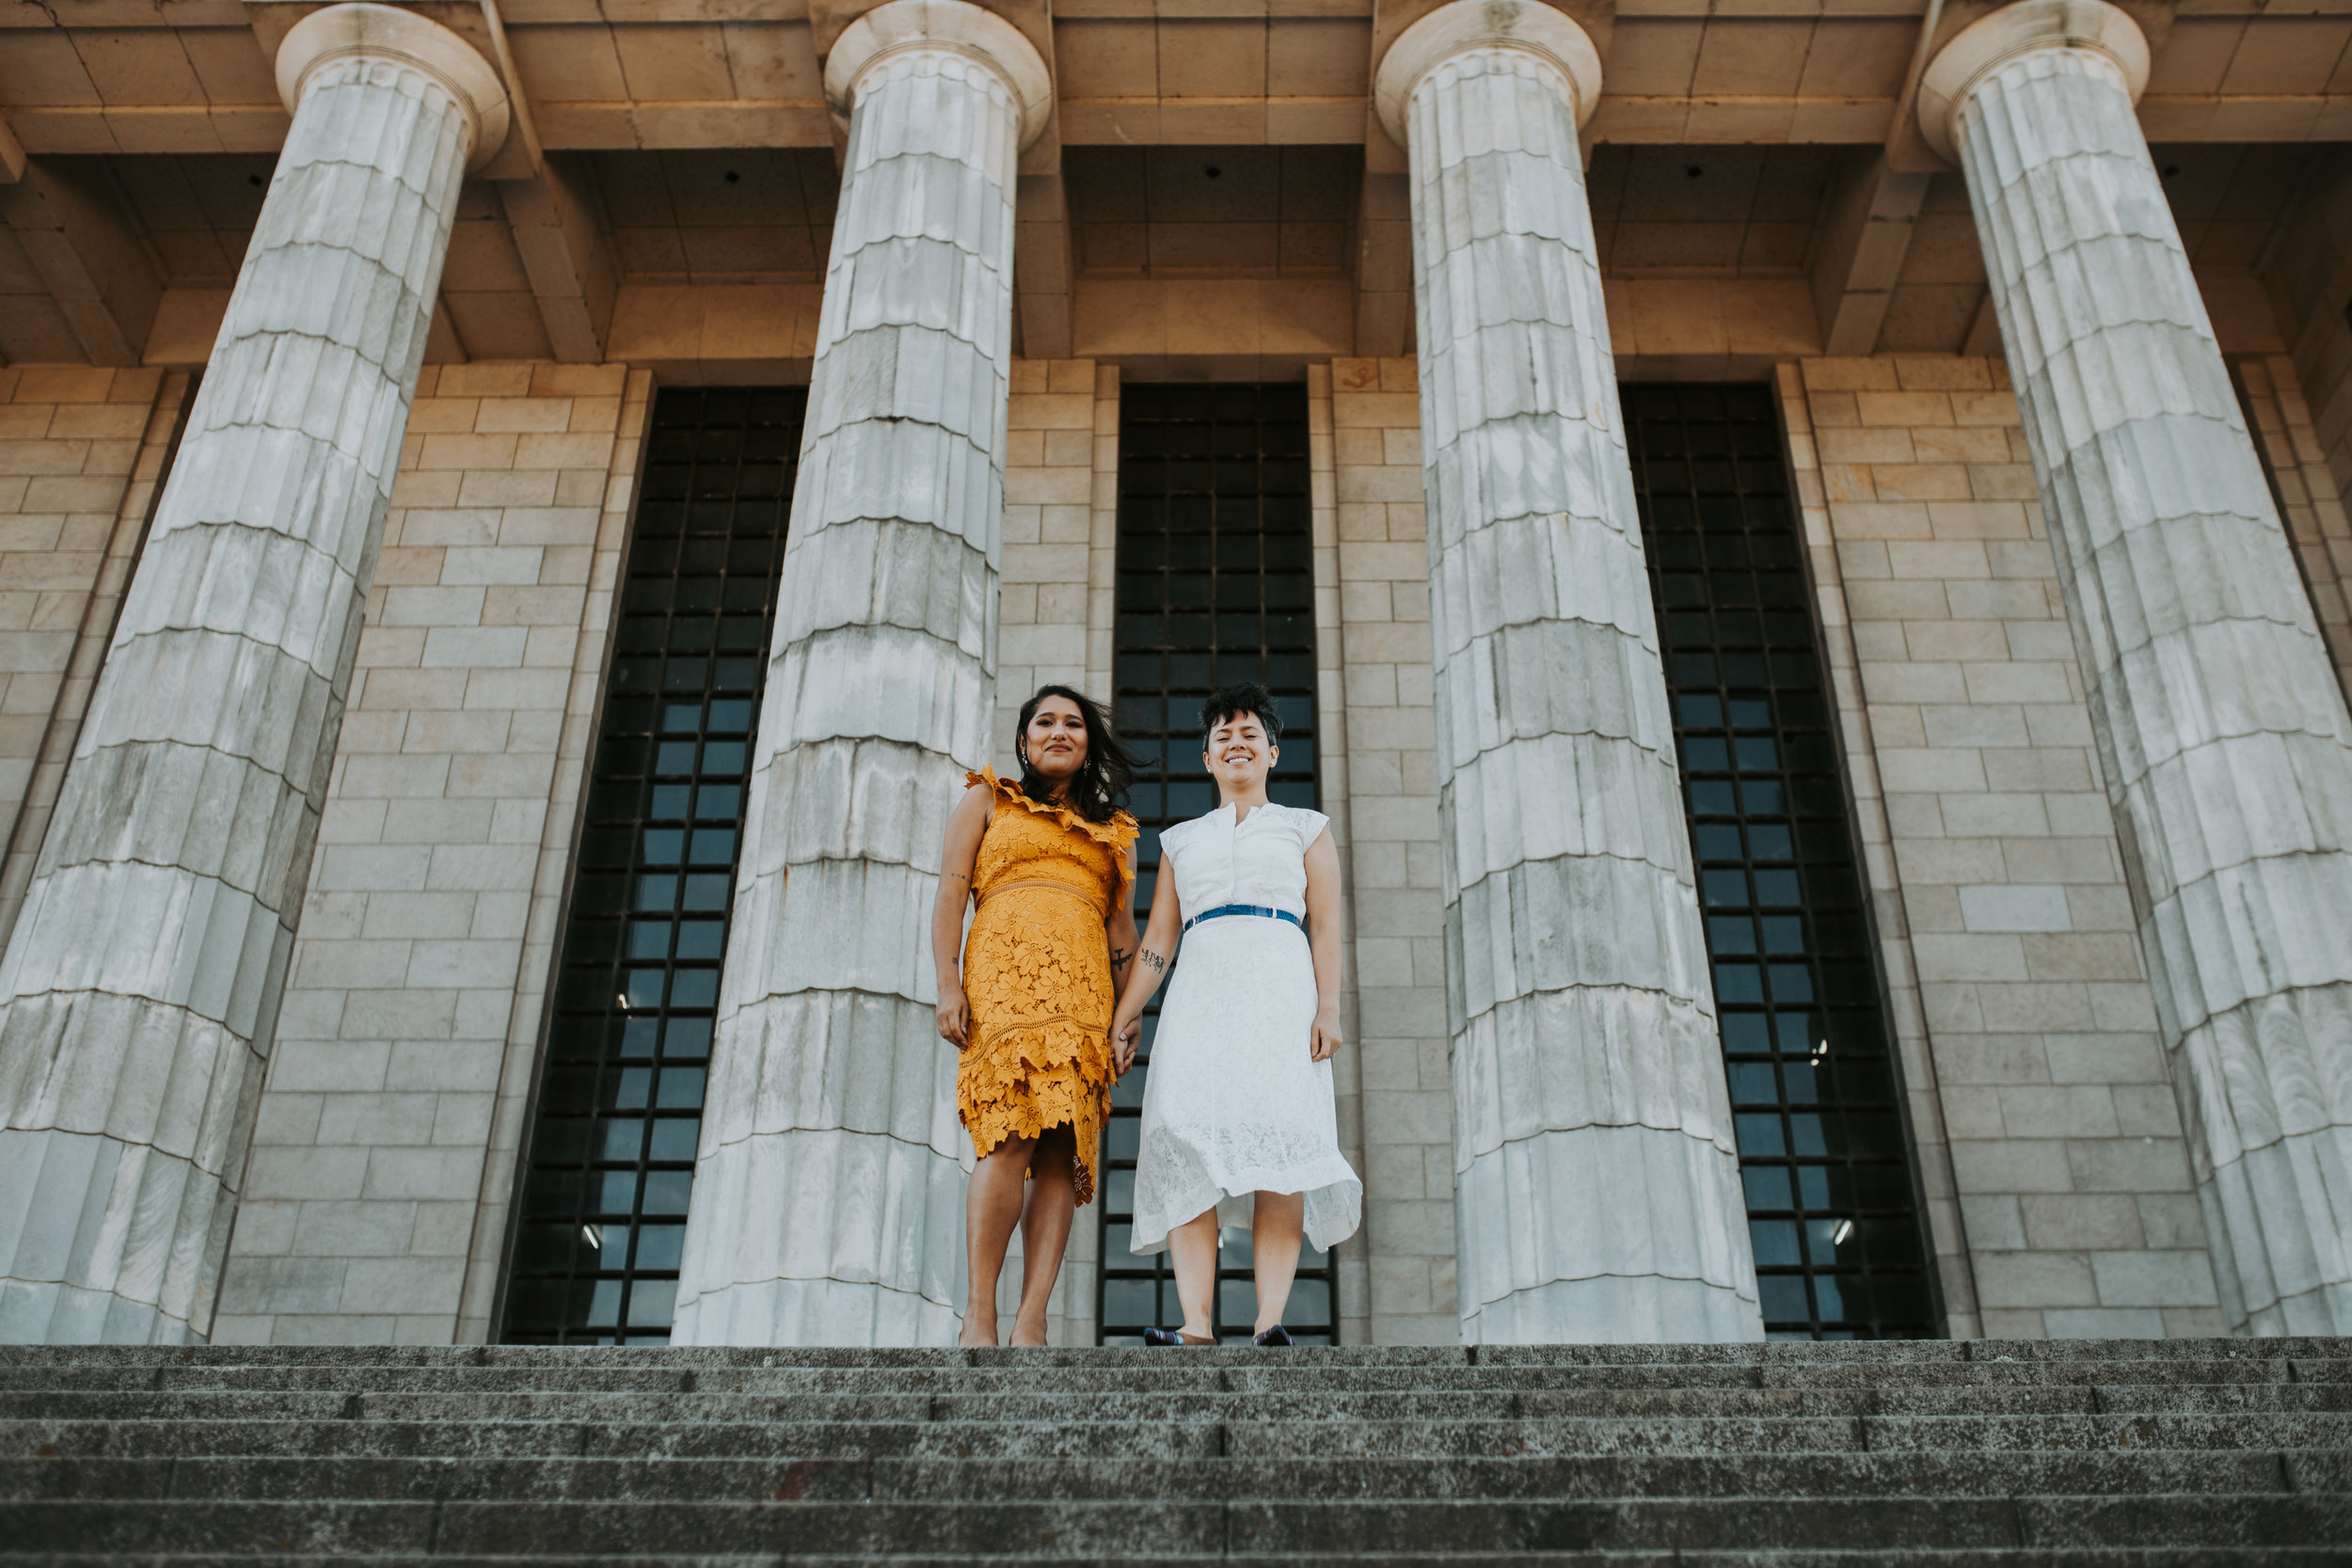 Shannen&Nadia_Buenos Aires_19June2019_(c)FeliciaLimPhotography_19.jpg